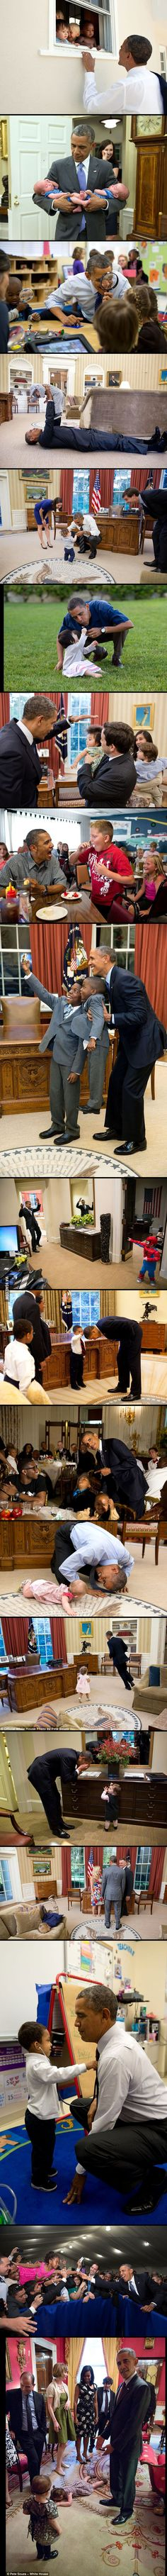 Obama is really good with kids